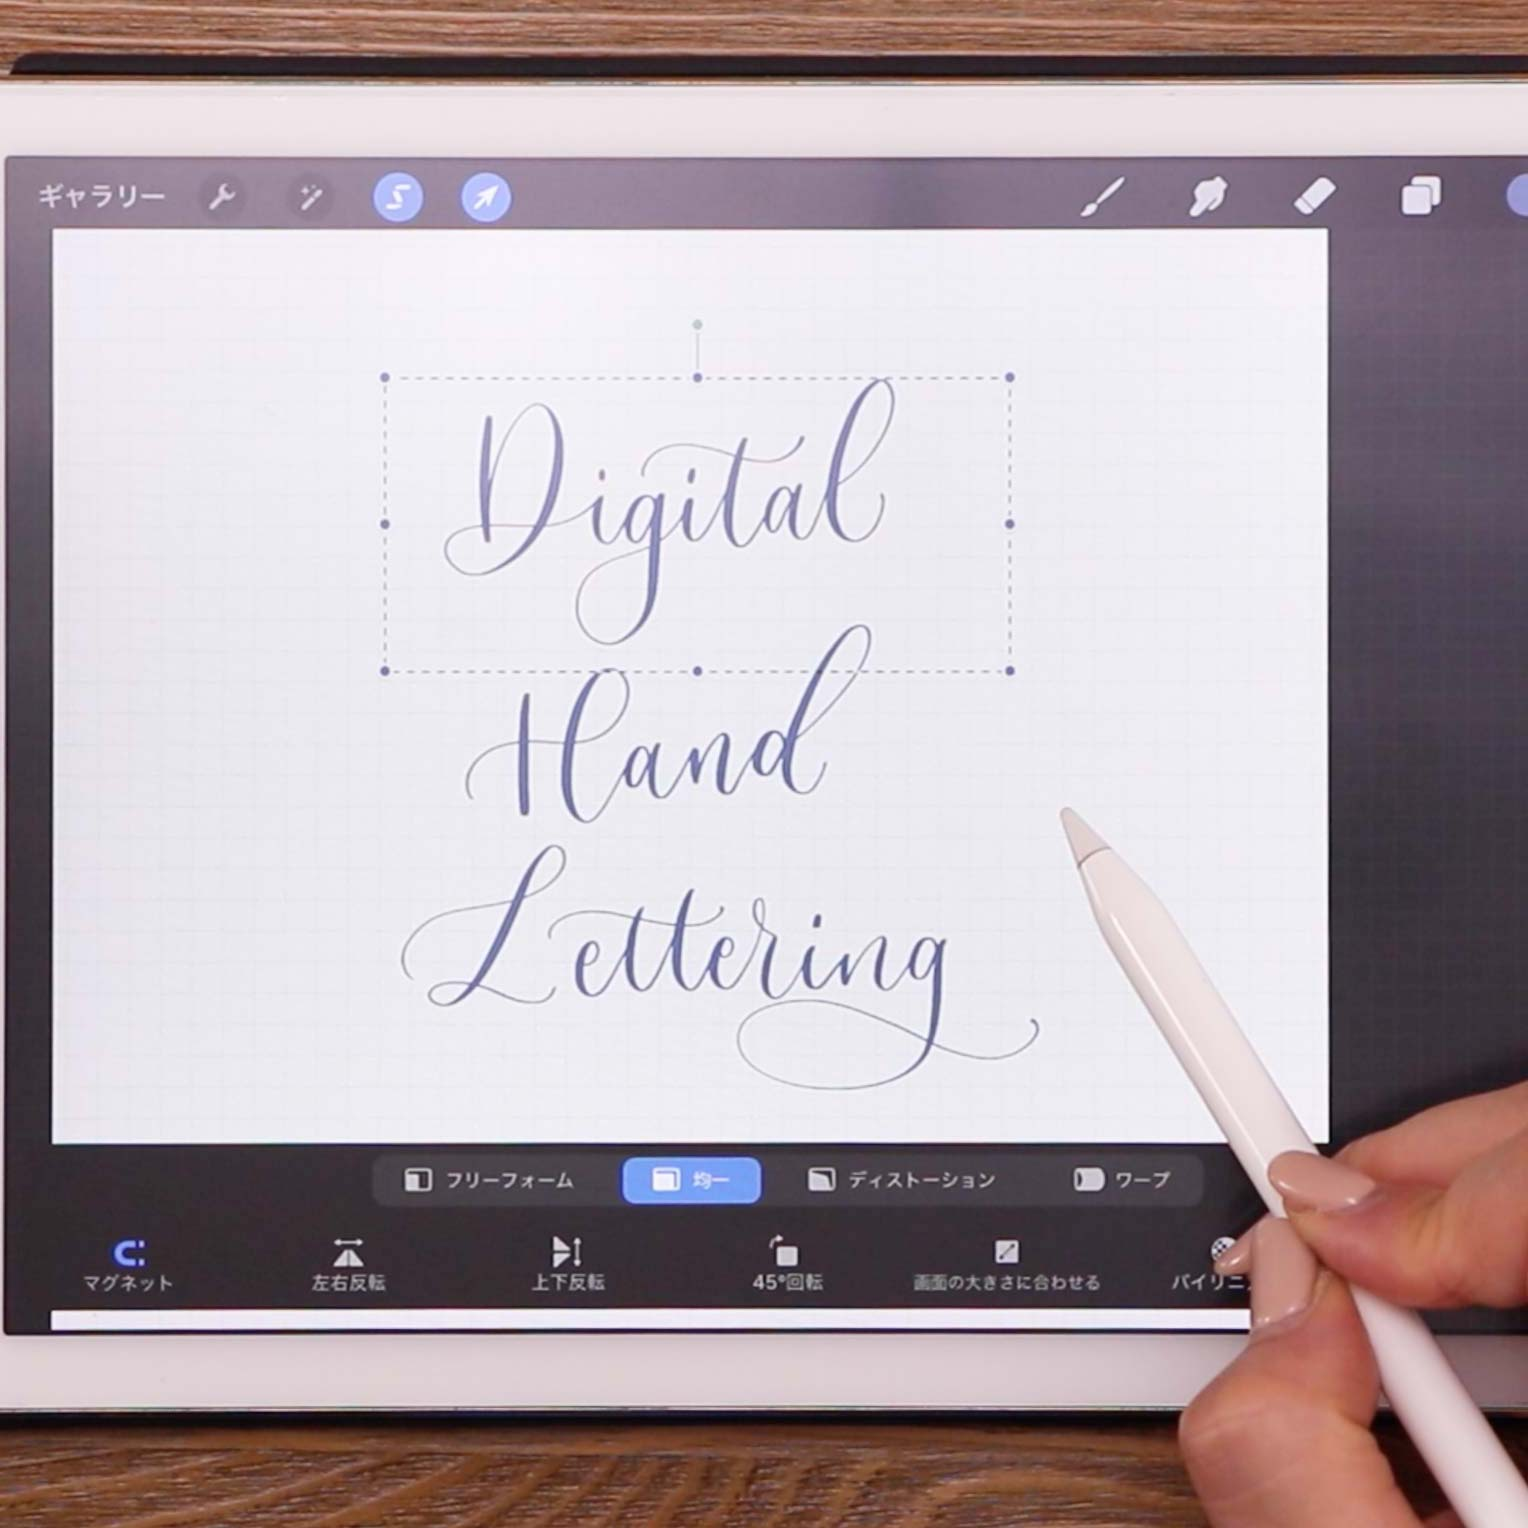 Digital Lettering: How to Copy and Paste Letters